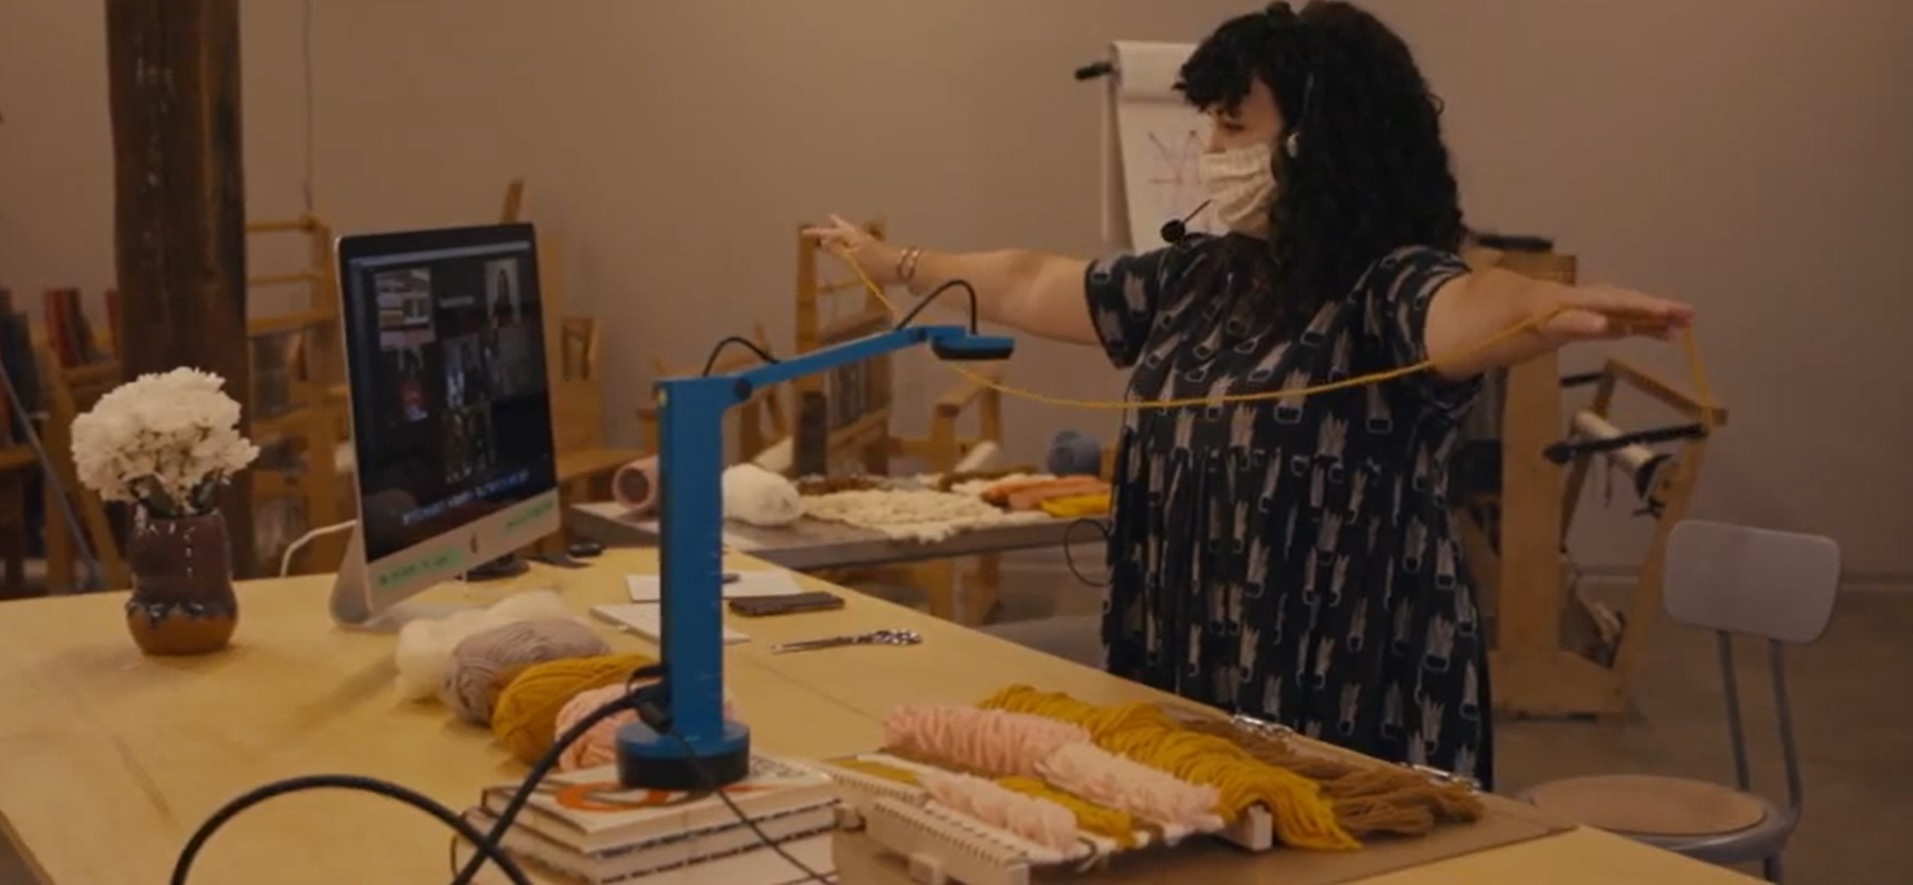 A masked figure with dark hair and a blue shirt holds out a length of fiber in an online demonstration at a workstation